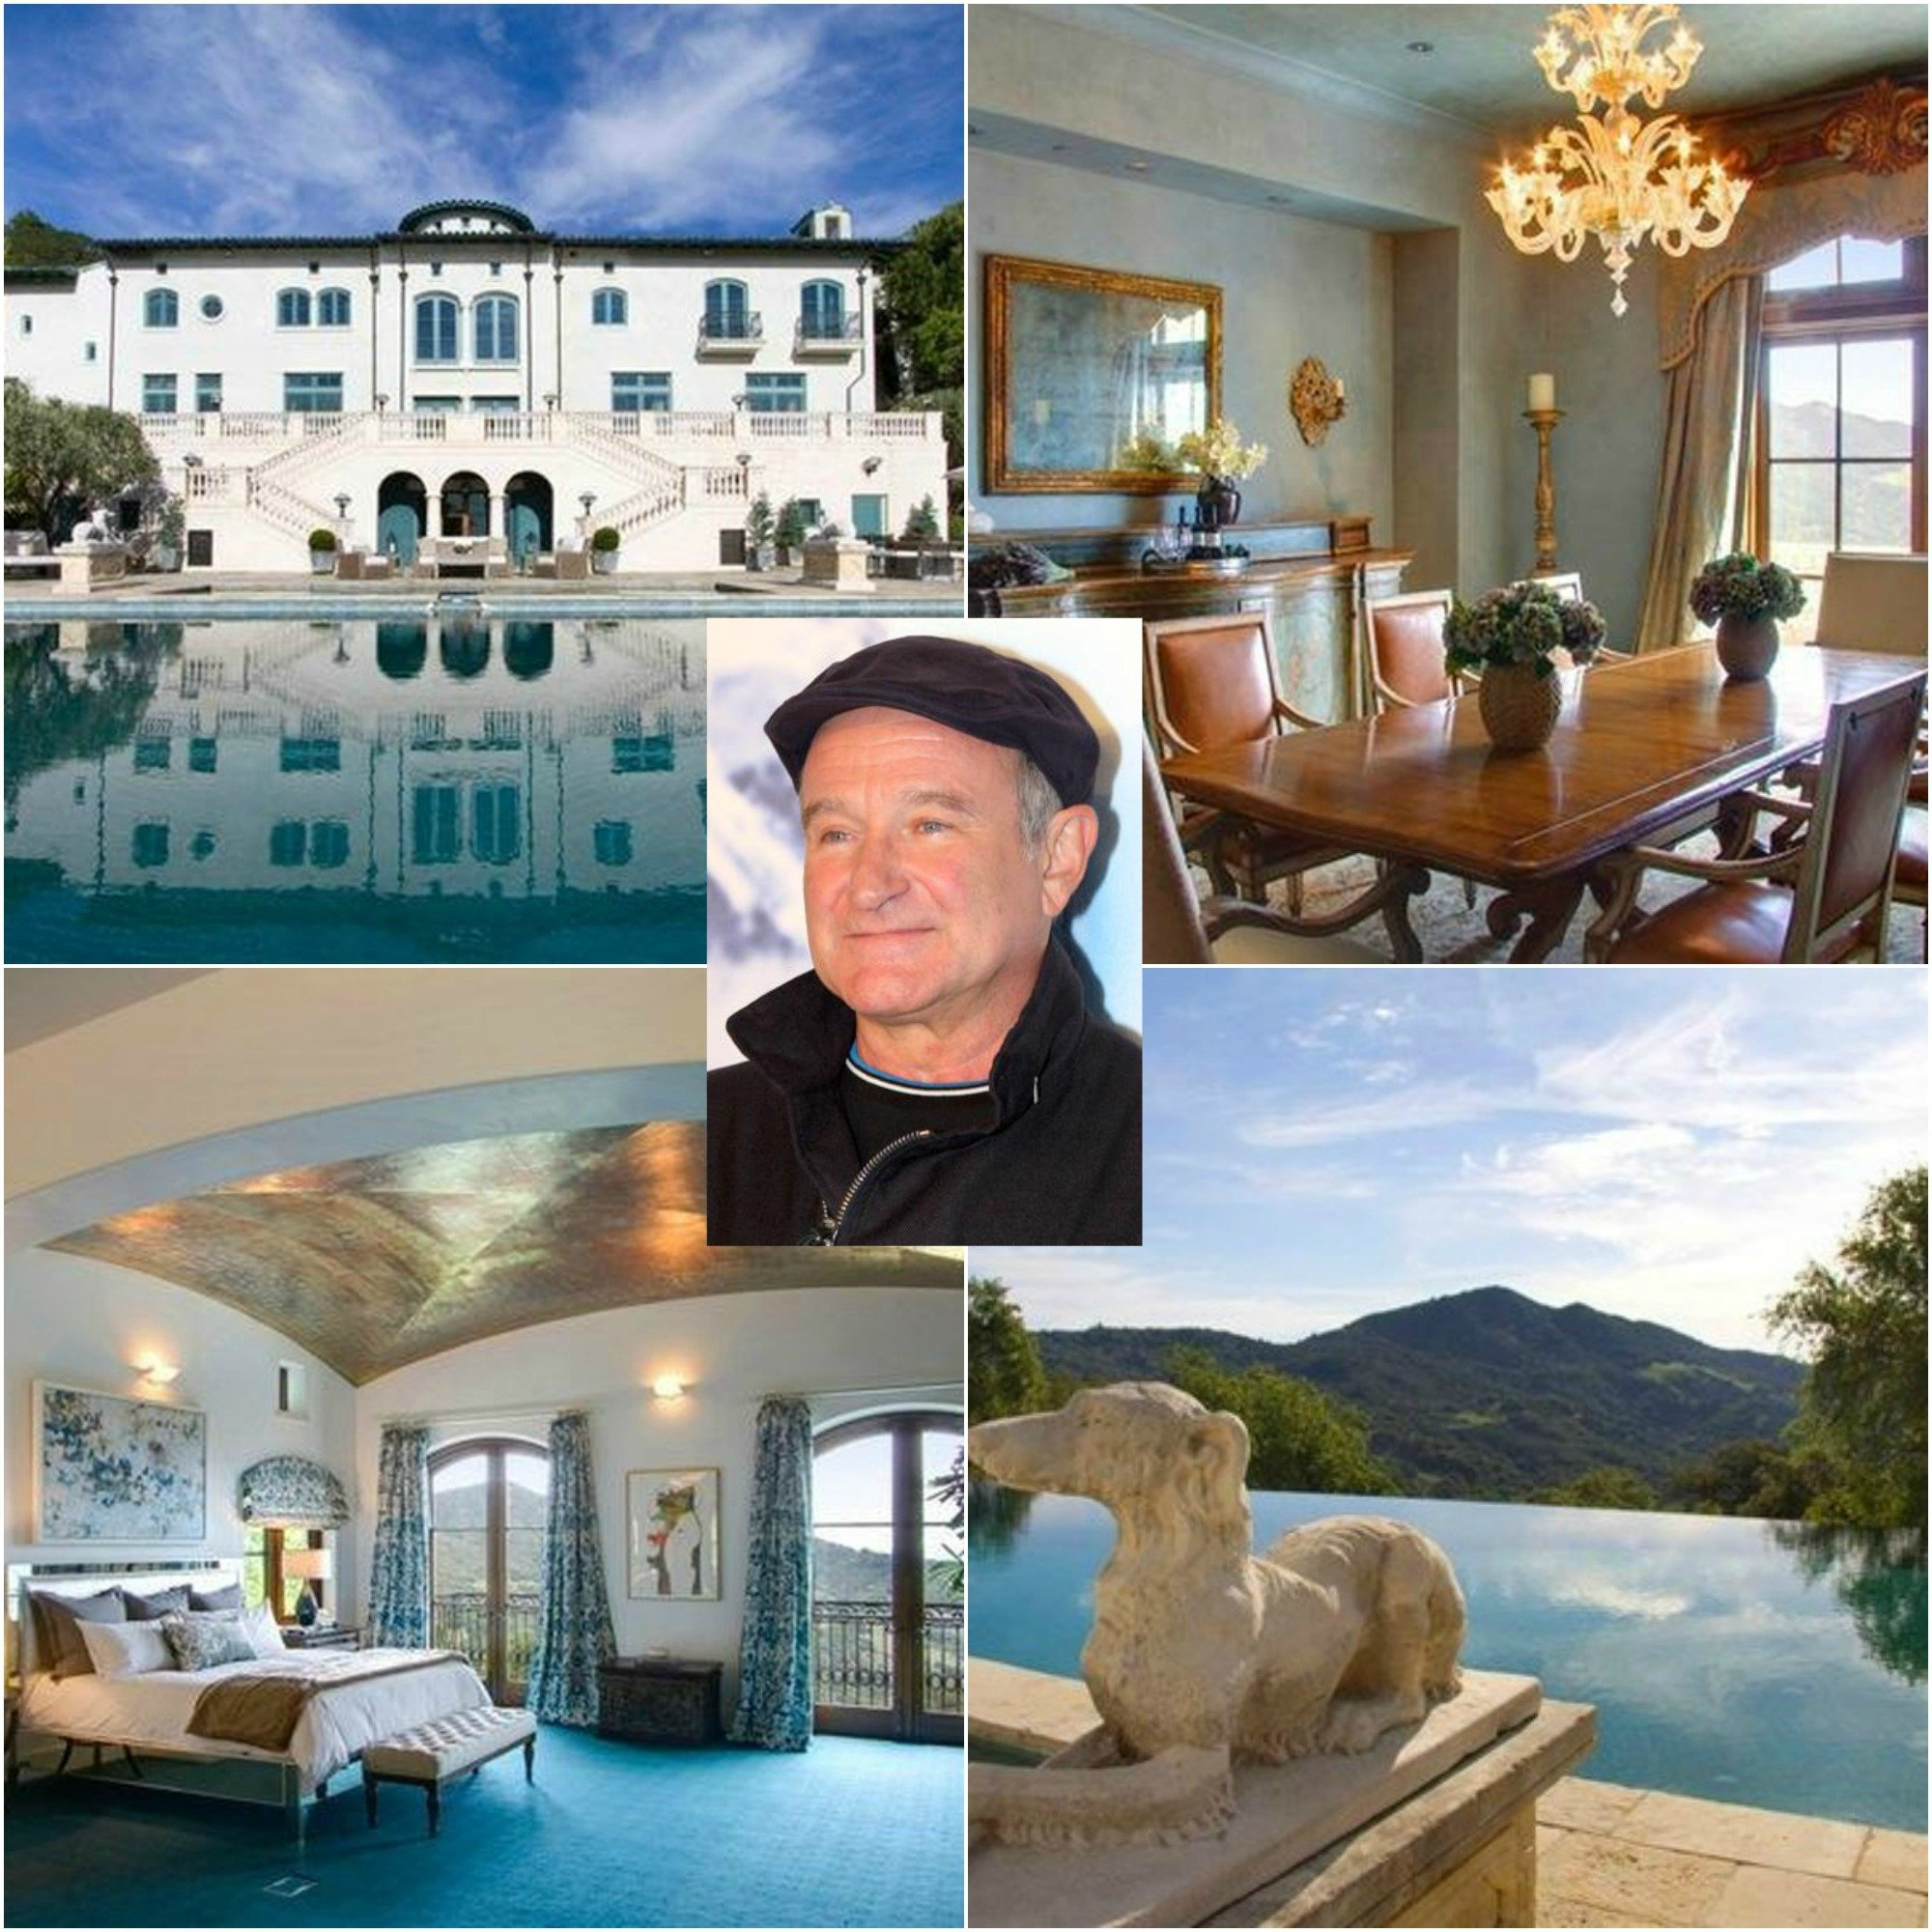 I wish I could buy Robin Williams Napa Valley Villa Estate for sale that sits on over 600 acres and has a working vineyard, barn, spring-fed pond and is the best Villa in Napa Valley